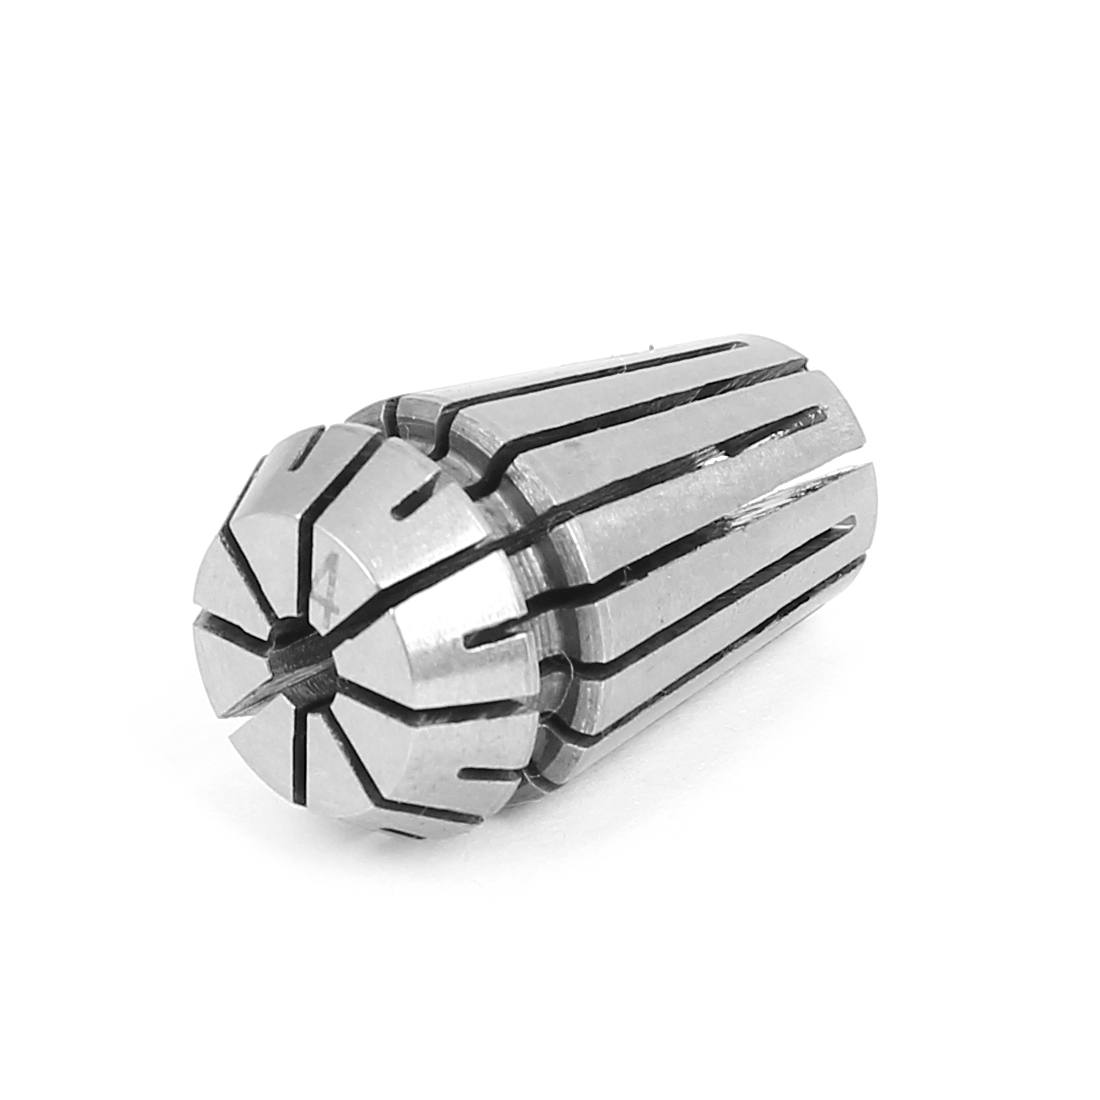 ER16 4mm Clamping Dia CNC Engraving Milling Machine Spring Collet